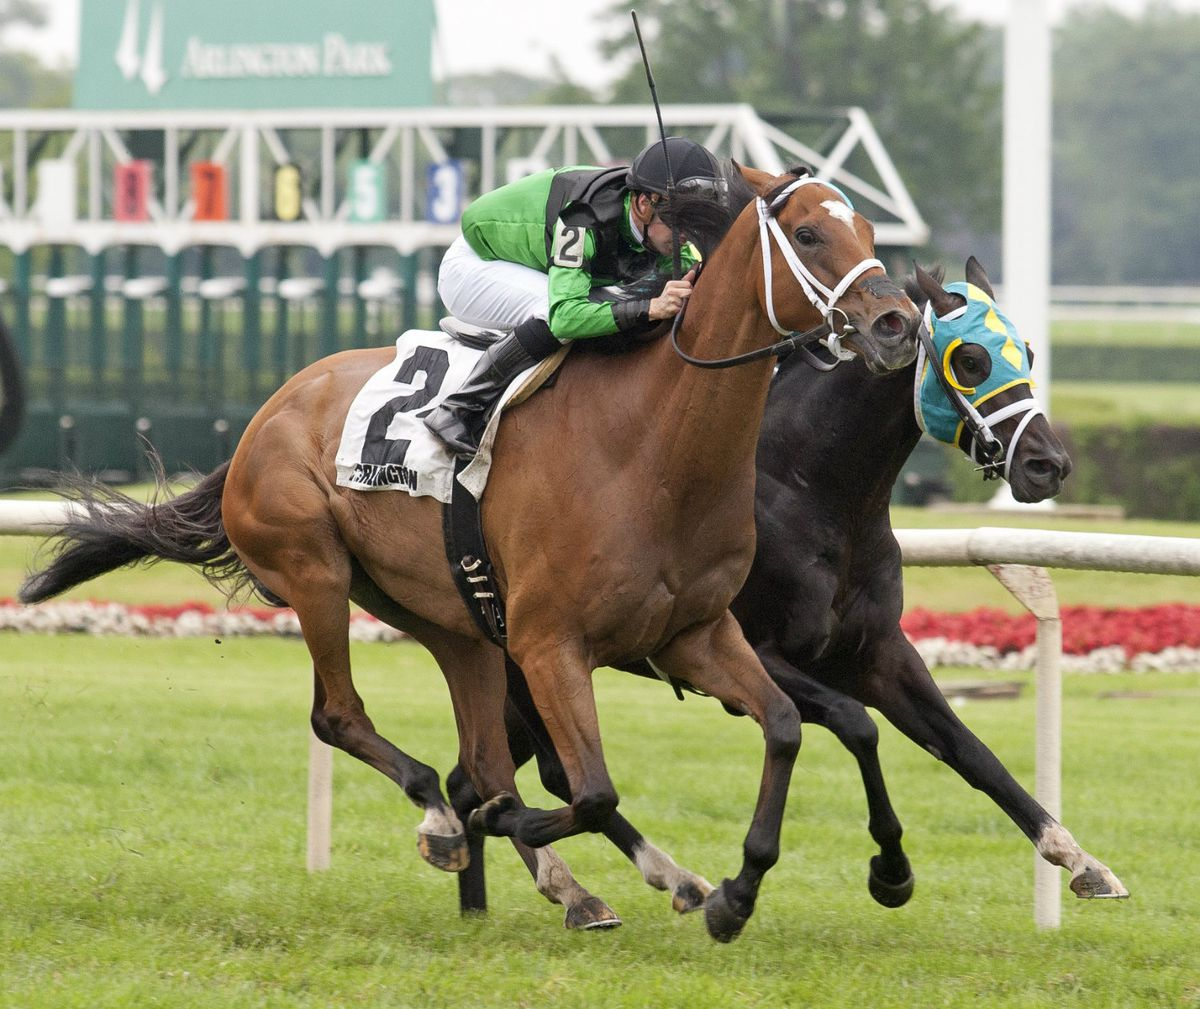 The Pizza Man (2), with Florent Geroux in the irons, from his winning effort in the Stars and Stripes on July 11, 2015, at Arlington Park. | Four Footed Fotos